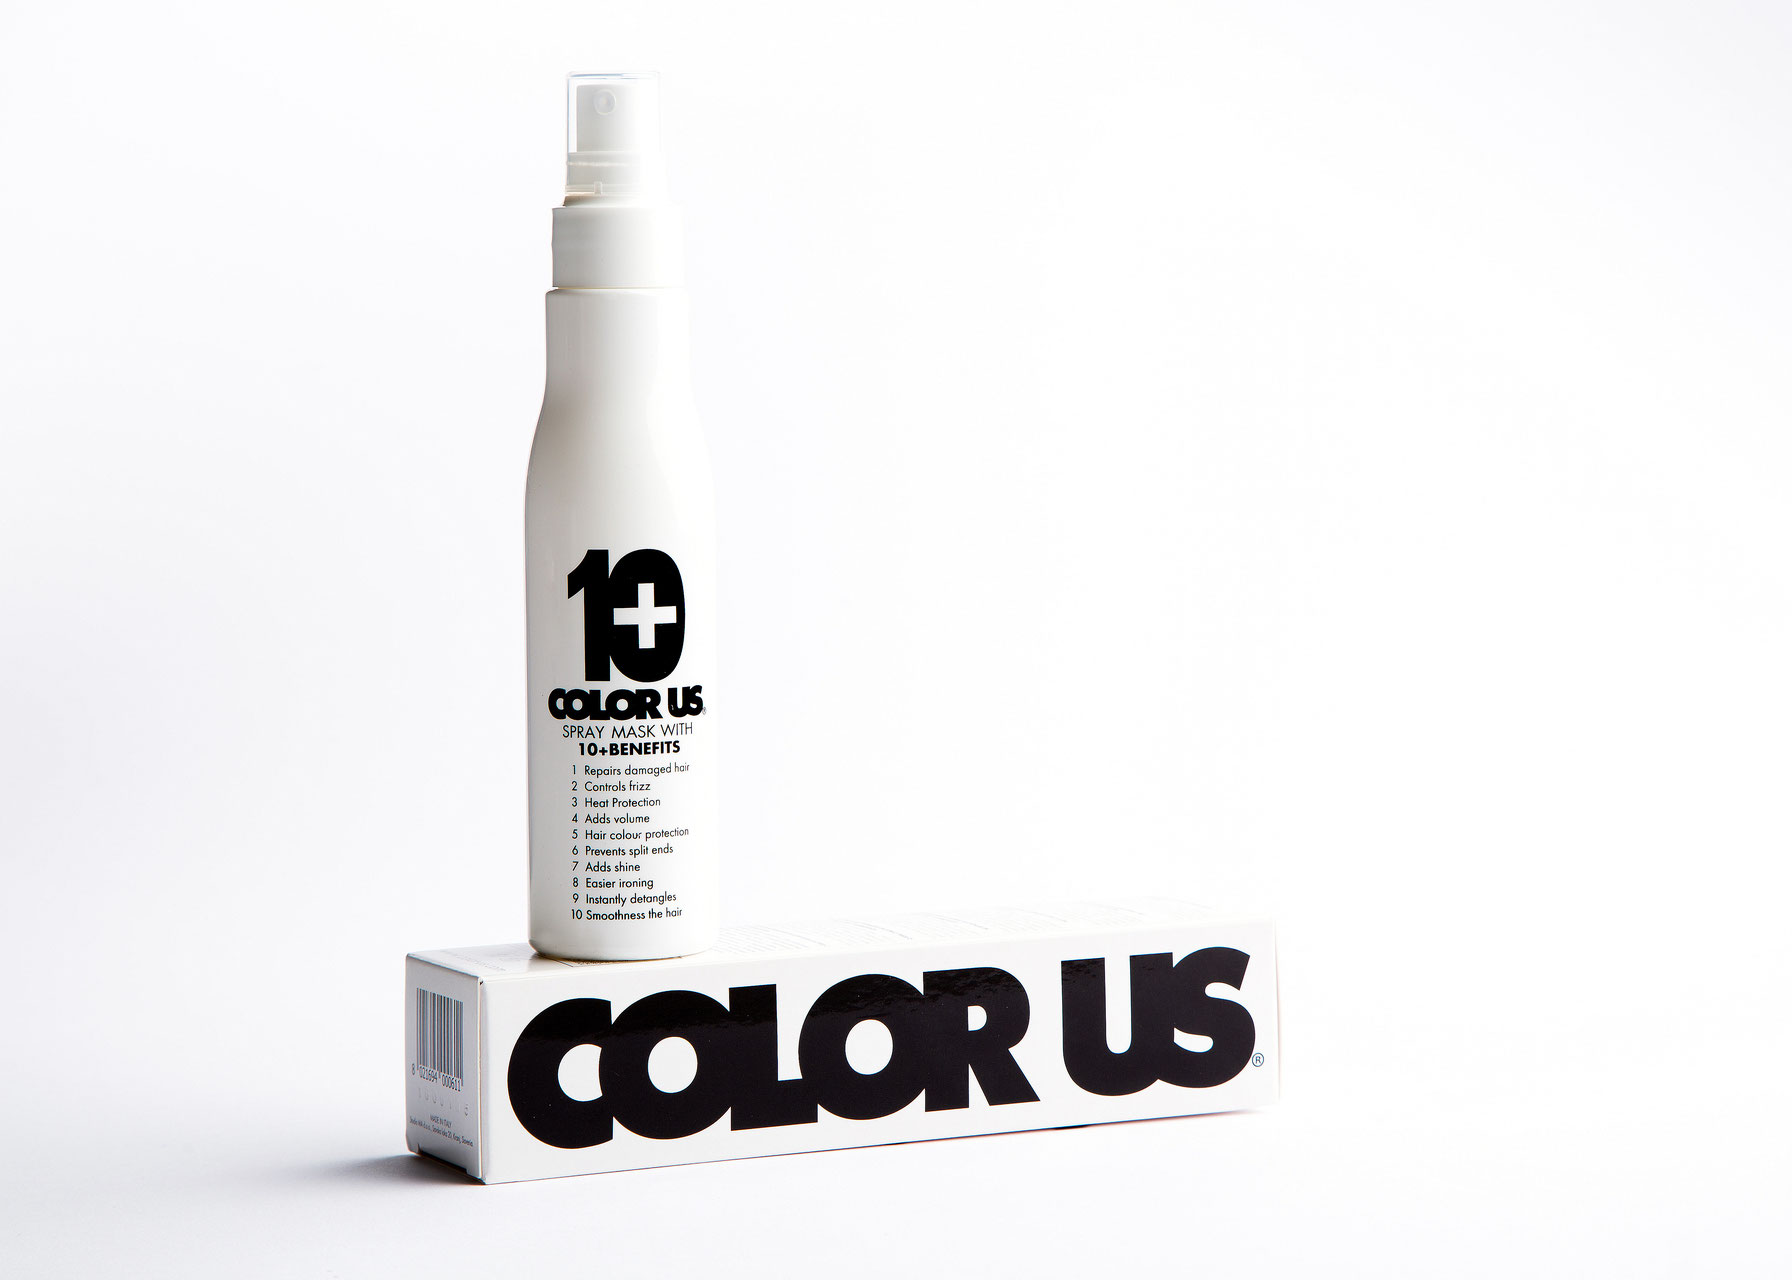 COLOR US® Spray Mask